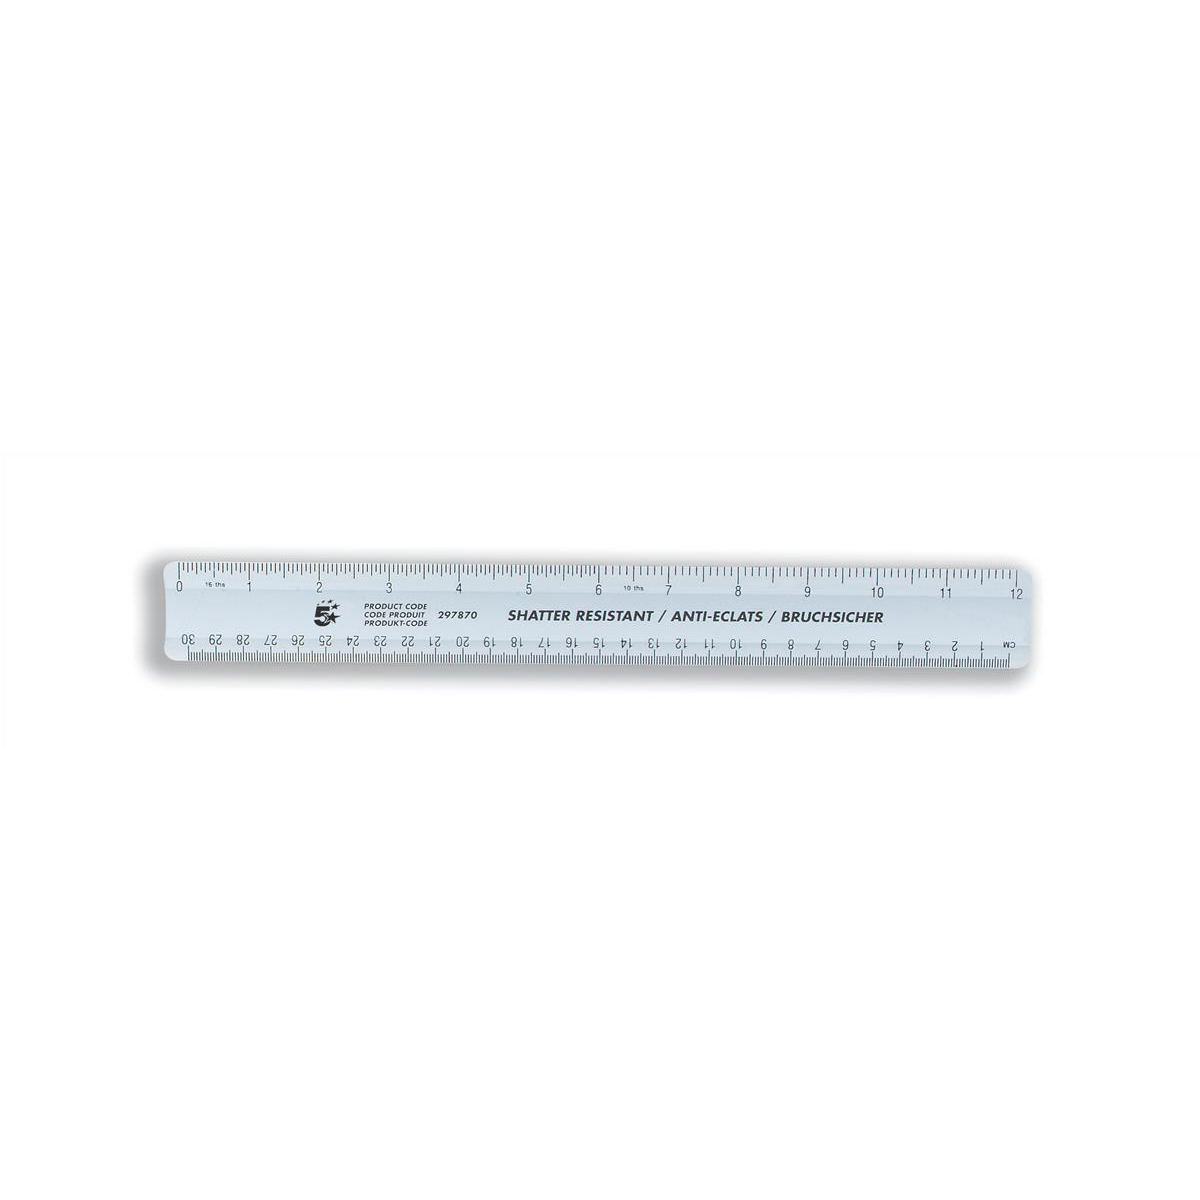 Image for 5 Star Office Shatter-resistant Ruler Plastic Metric and Imperial Markings 300mm Blue Tint [Pack 10]